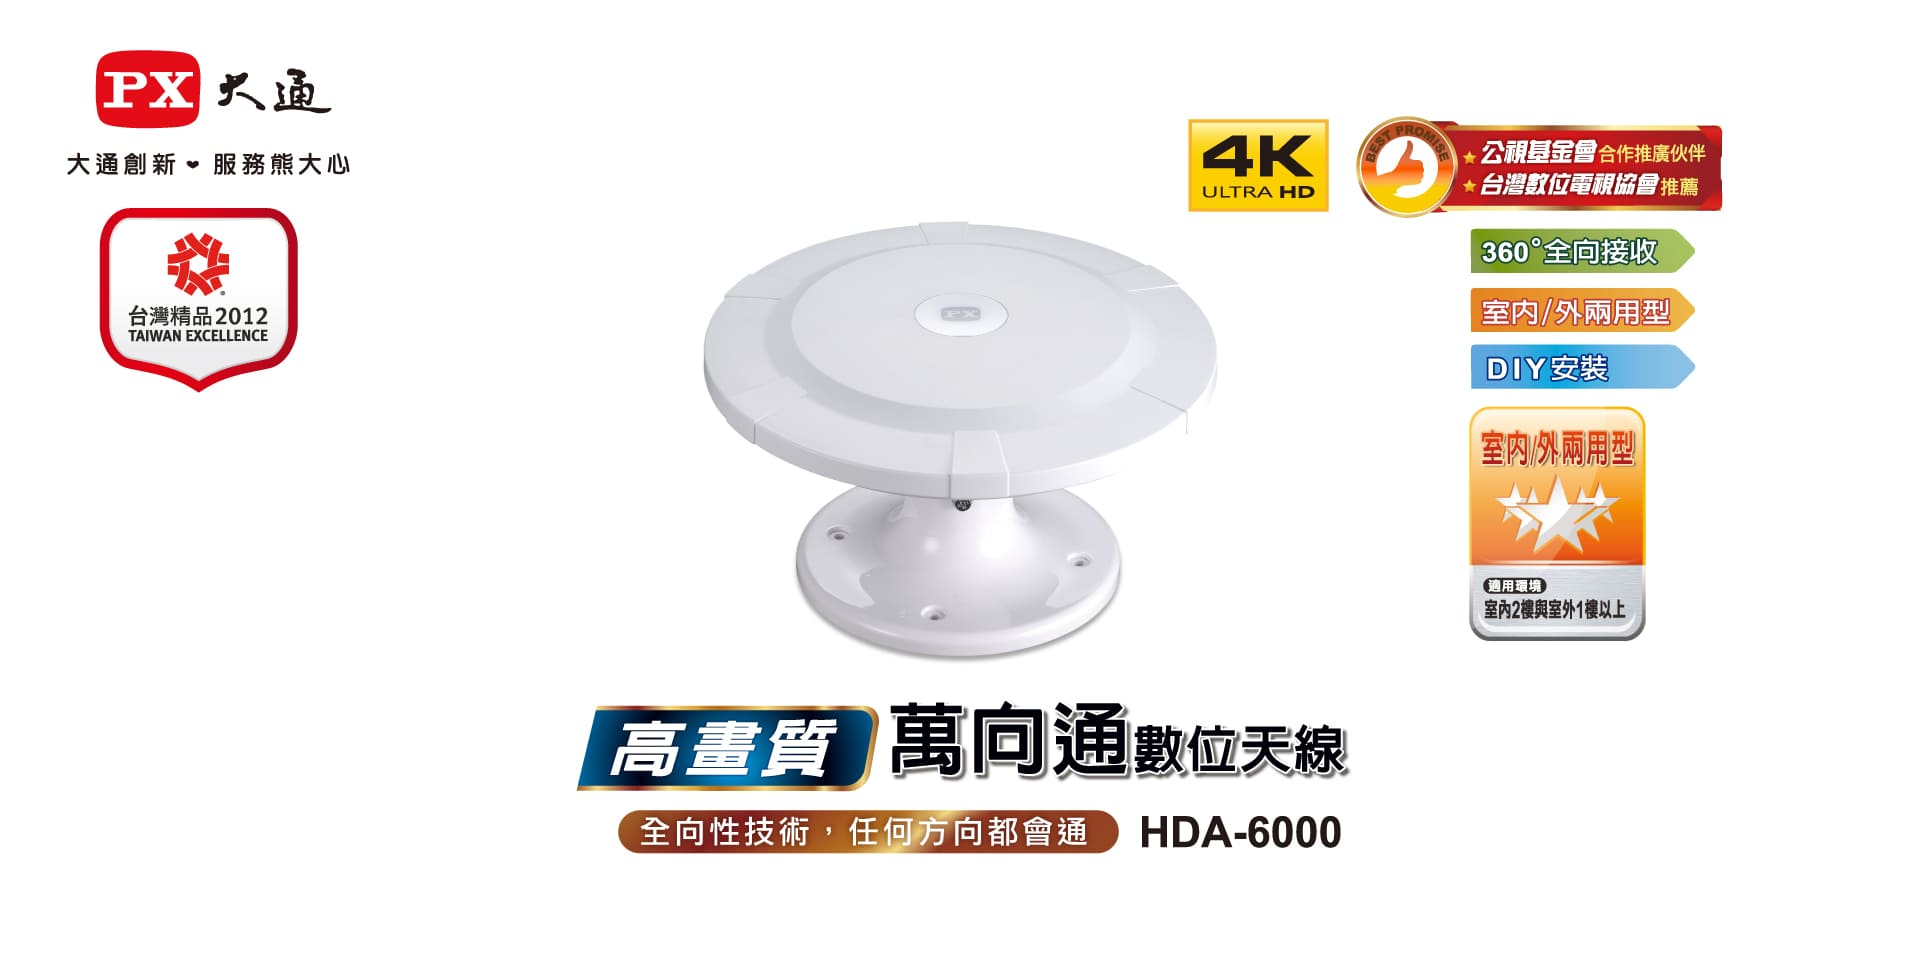 proimages/product/Antenna/HDA-6000/HDA-6000-01.jpg